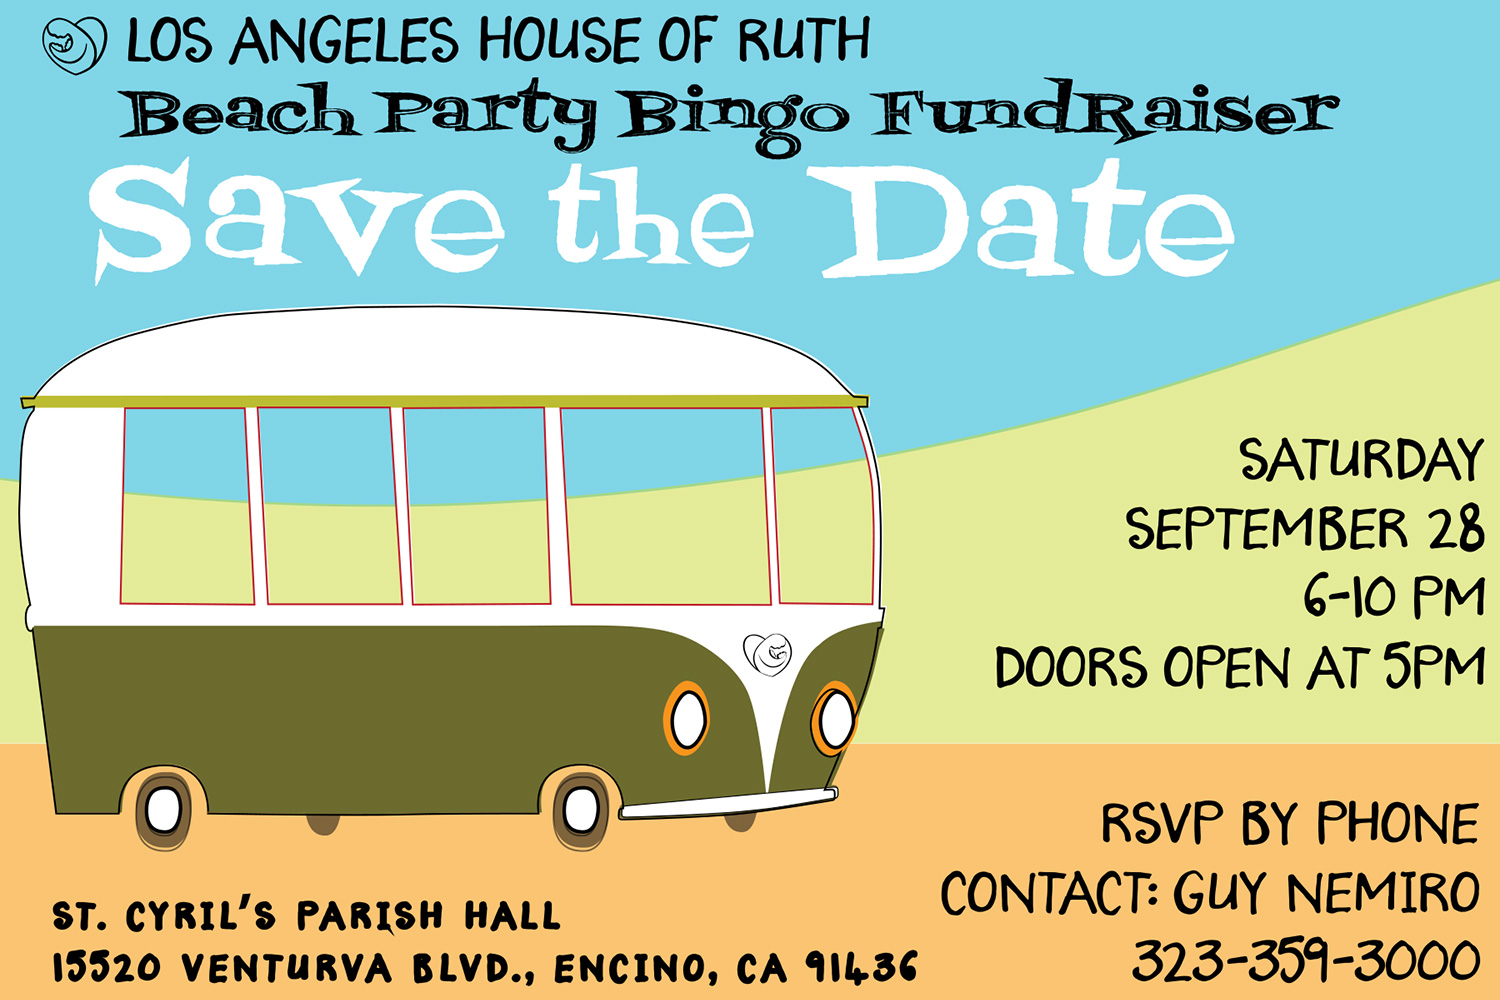 Los Angeles House of Ruth Beach Party Bingo Fundraiser Save the Date